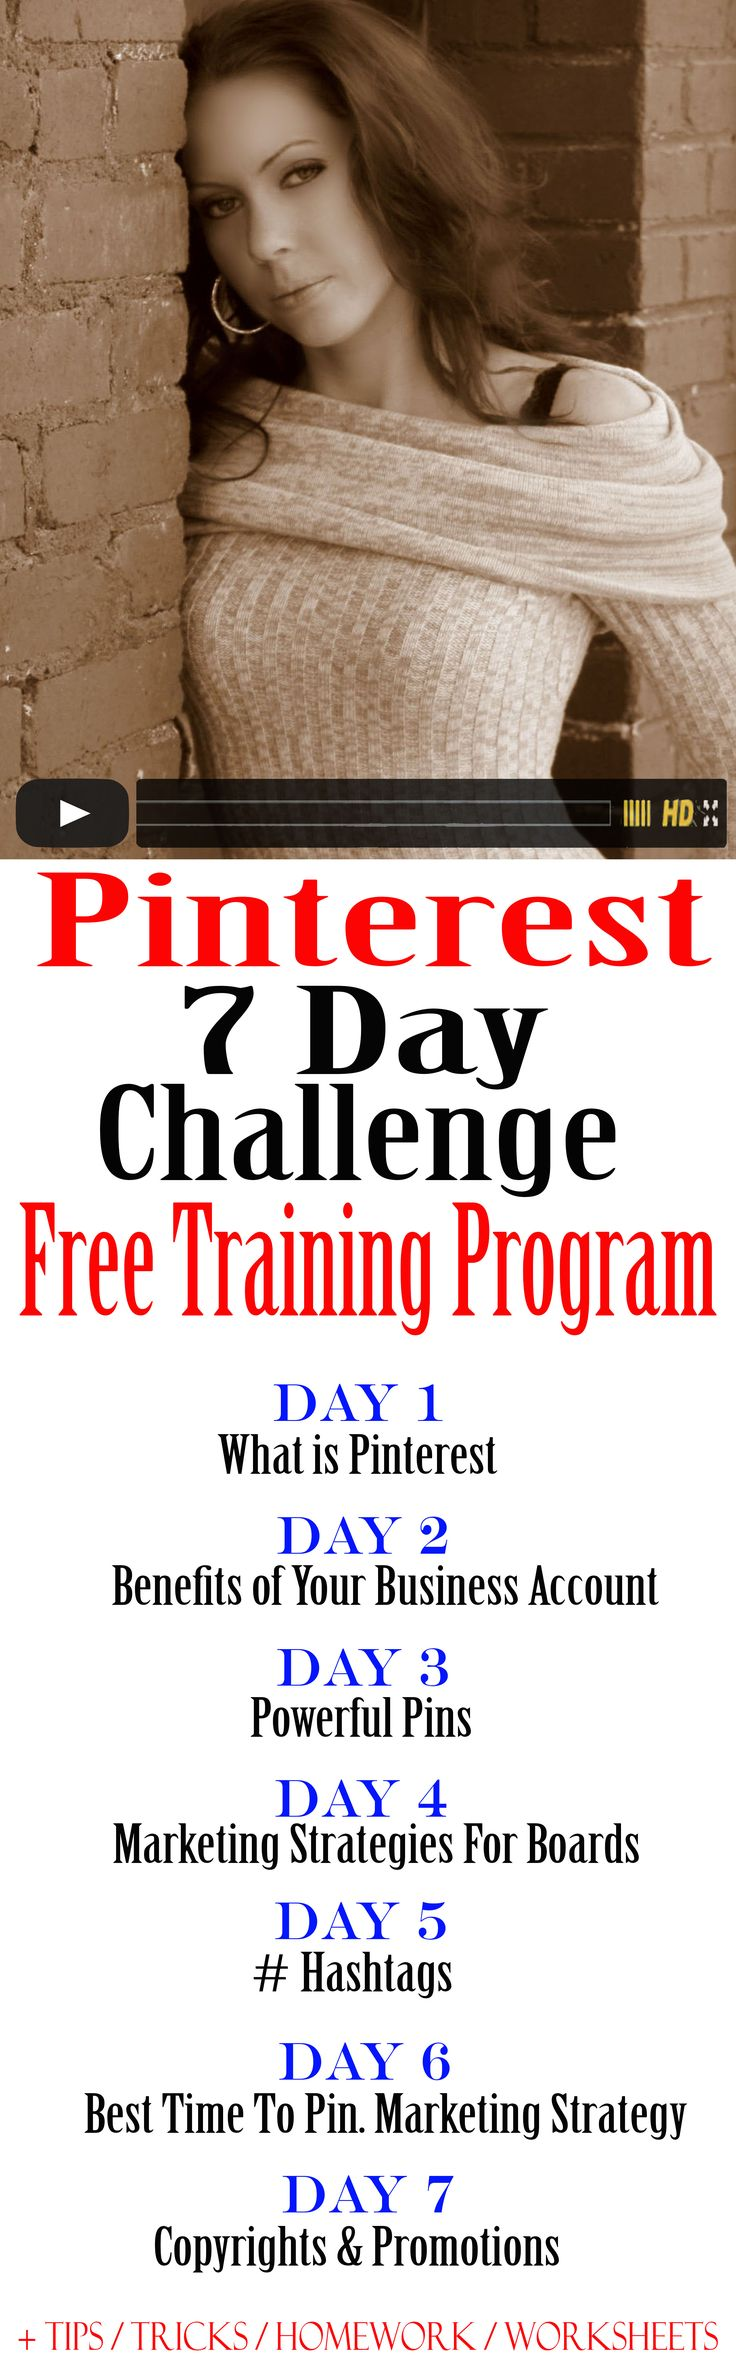 FREE TRAINING PROGRAM You Will Learn: Why you can't afford not to have Pinterest.  How you can make money with it.  How to create powerful pins.  how to attract more clients.  how to increase your sales.  how to avoid the most commonly made mistakes. #pinterest